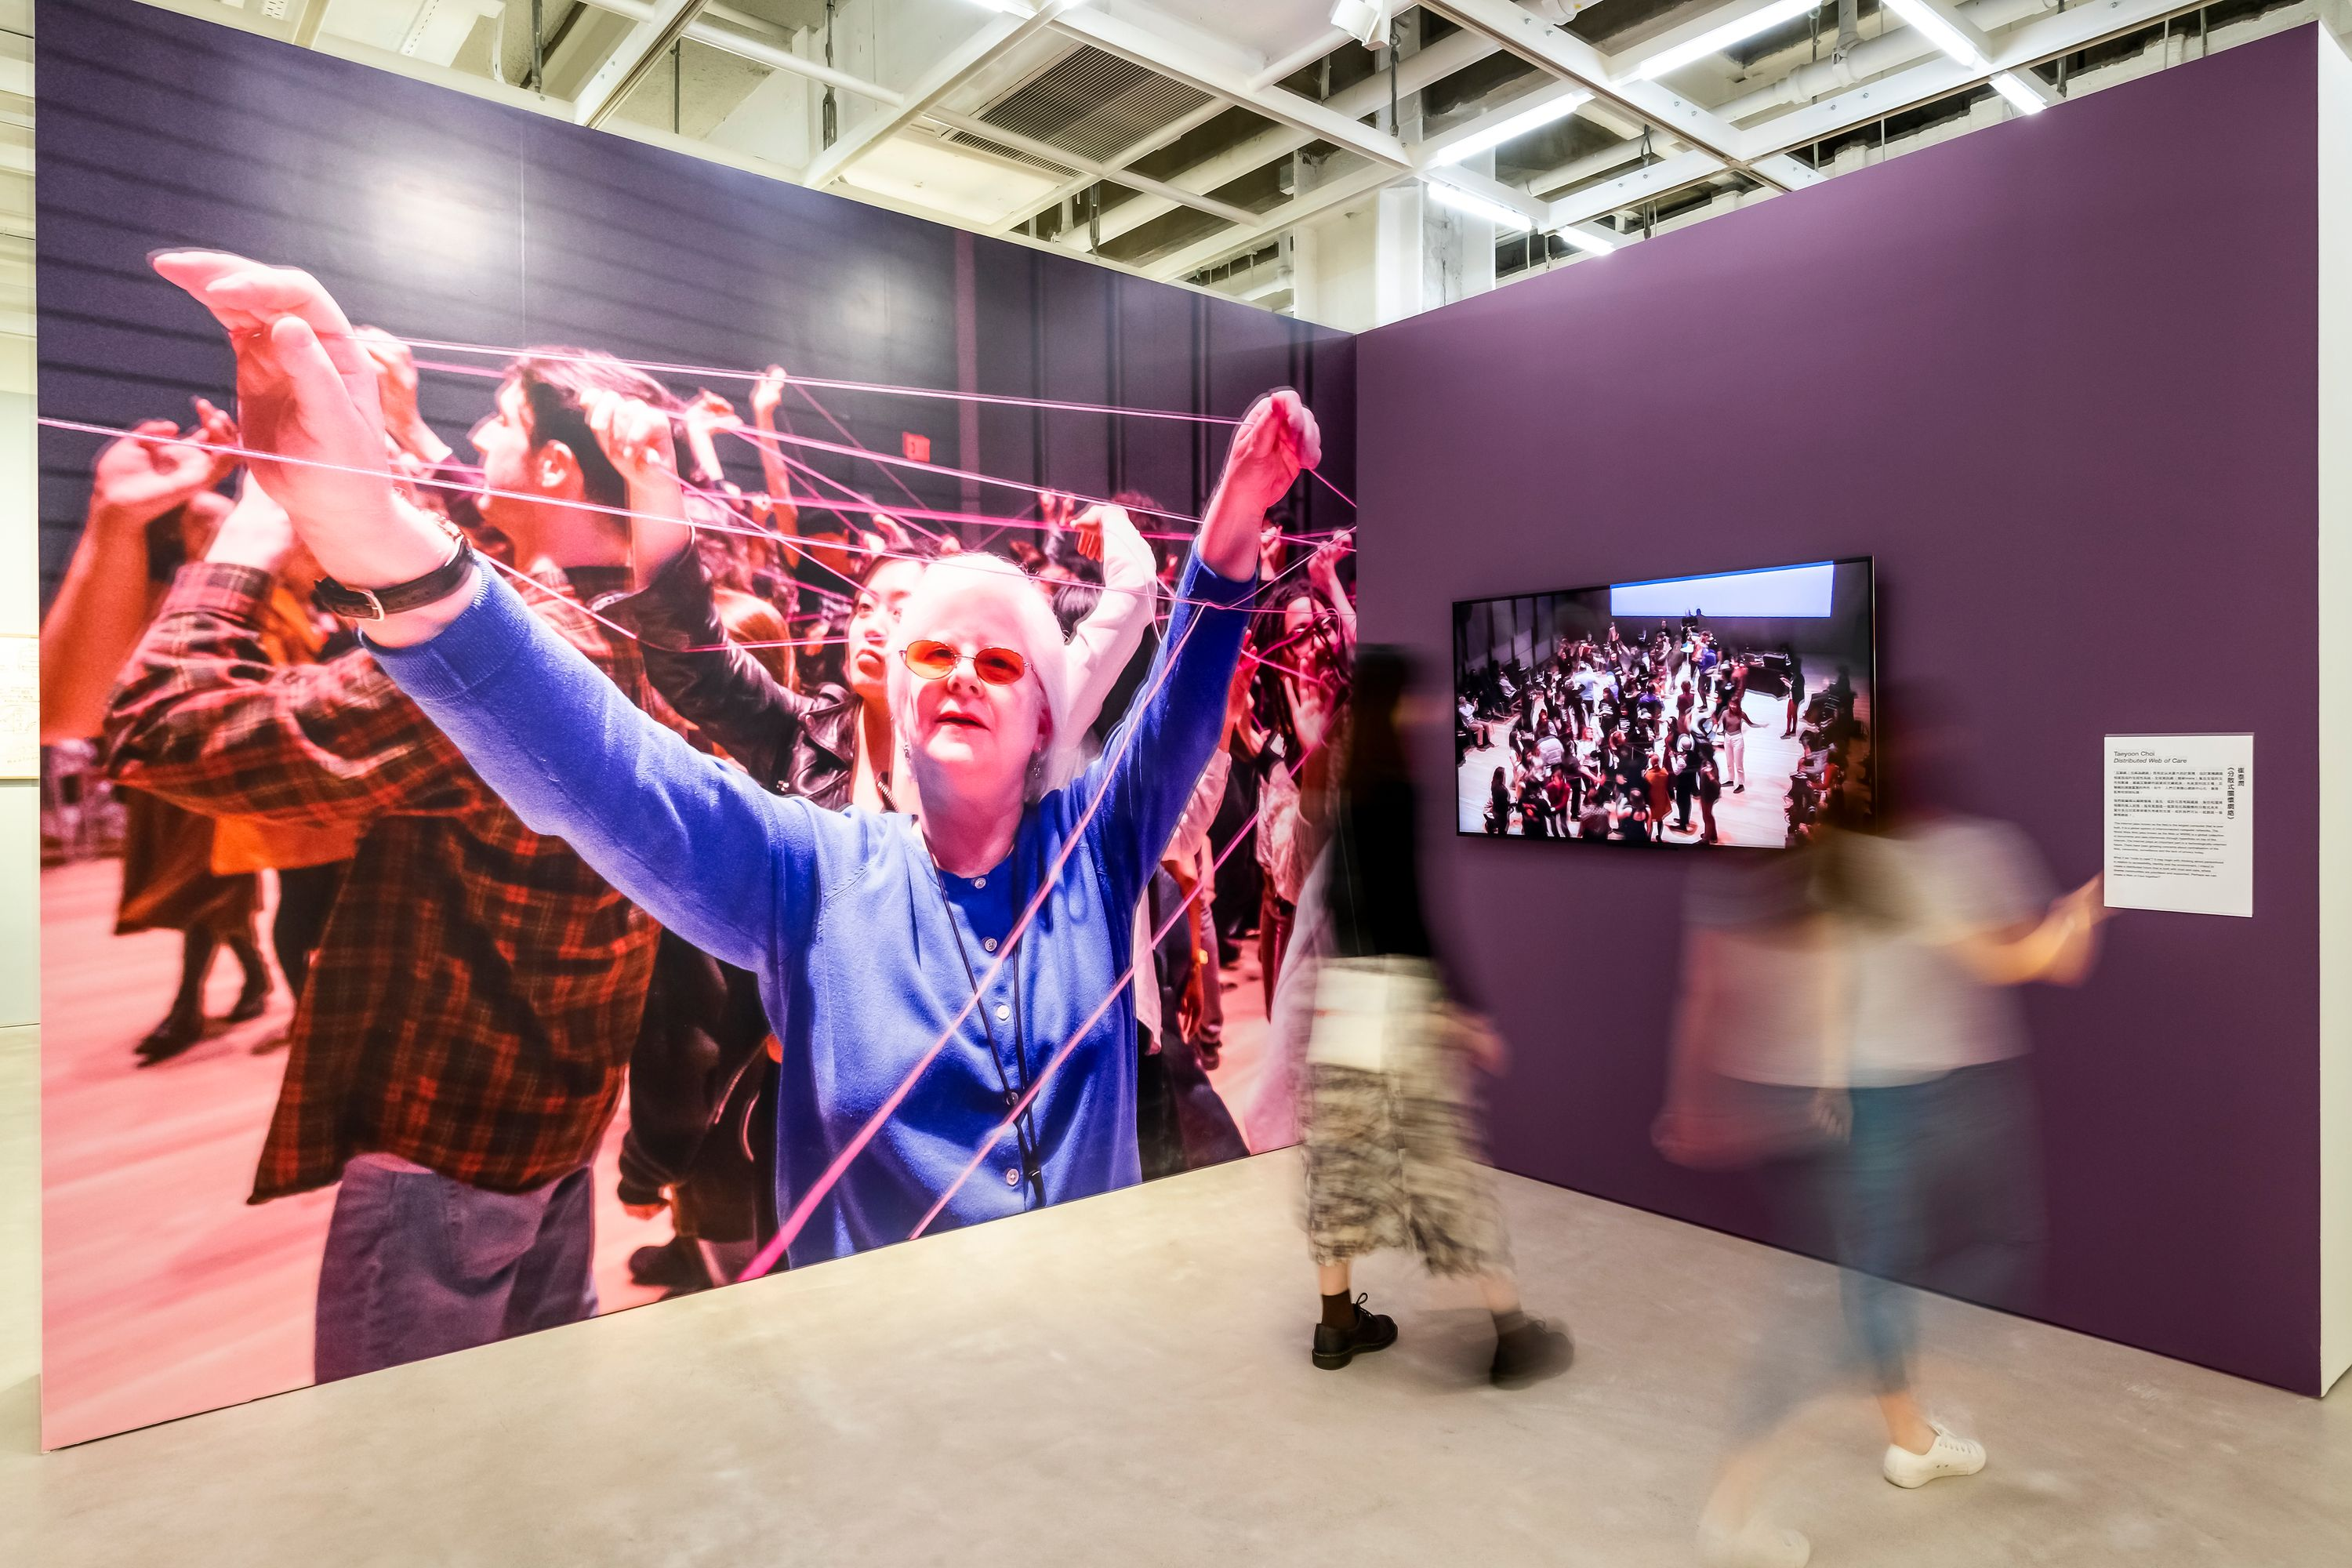 A large photo is printed on a gallery wall, showing a woman in a blue shirt holding string above her head. Other people behind her are holding onto the same string. On another gallery wall, which is painted purple, there is a video screen which two people are watching.